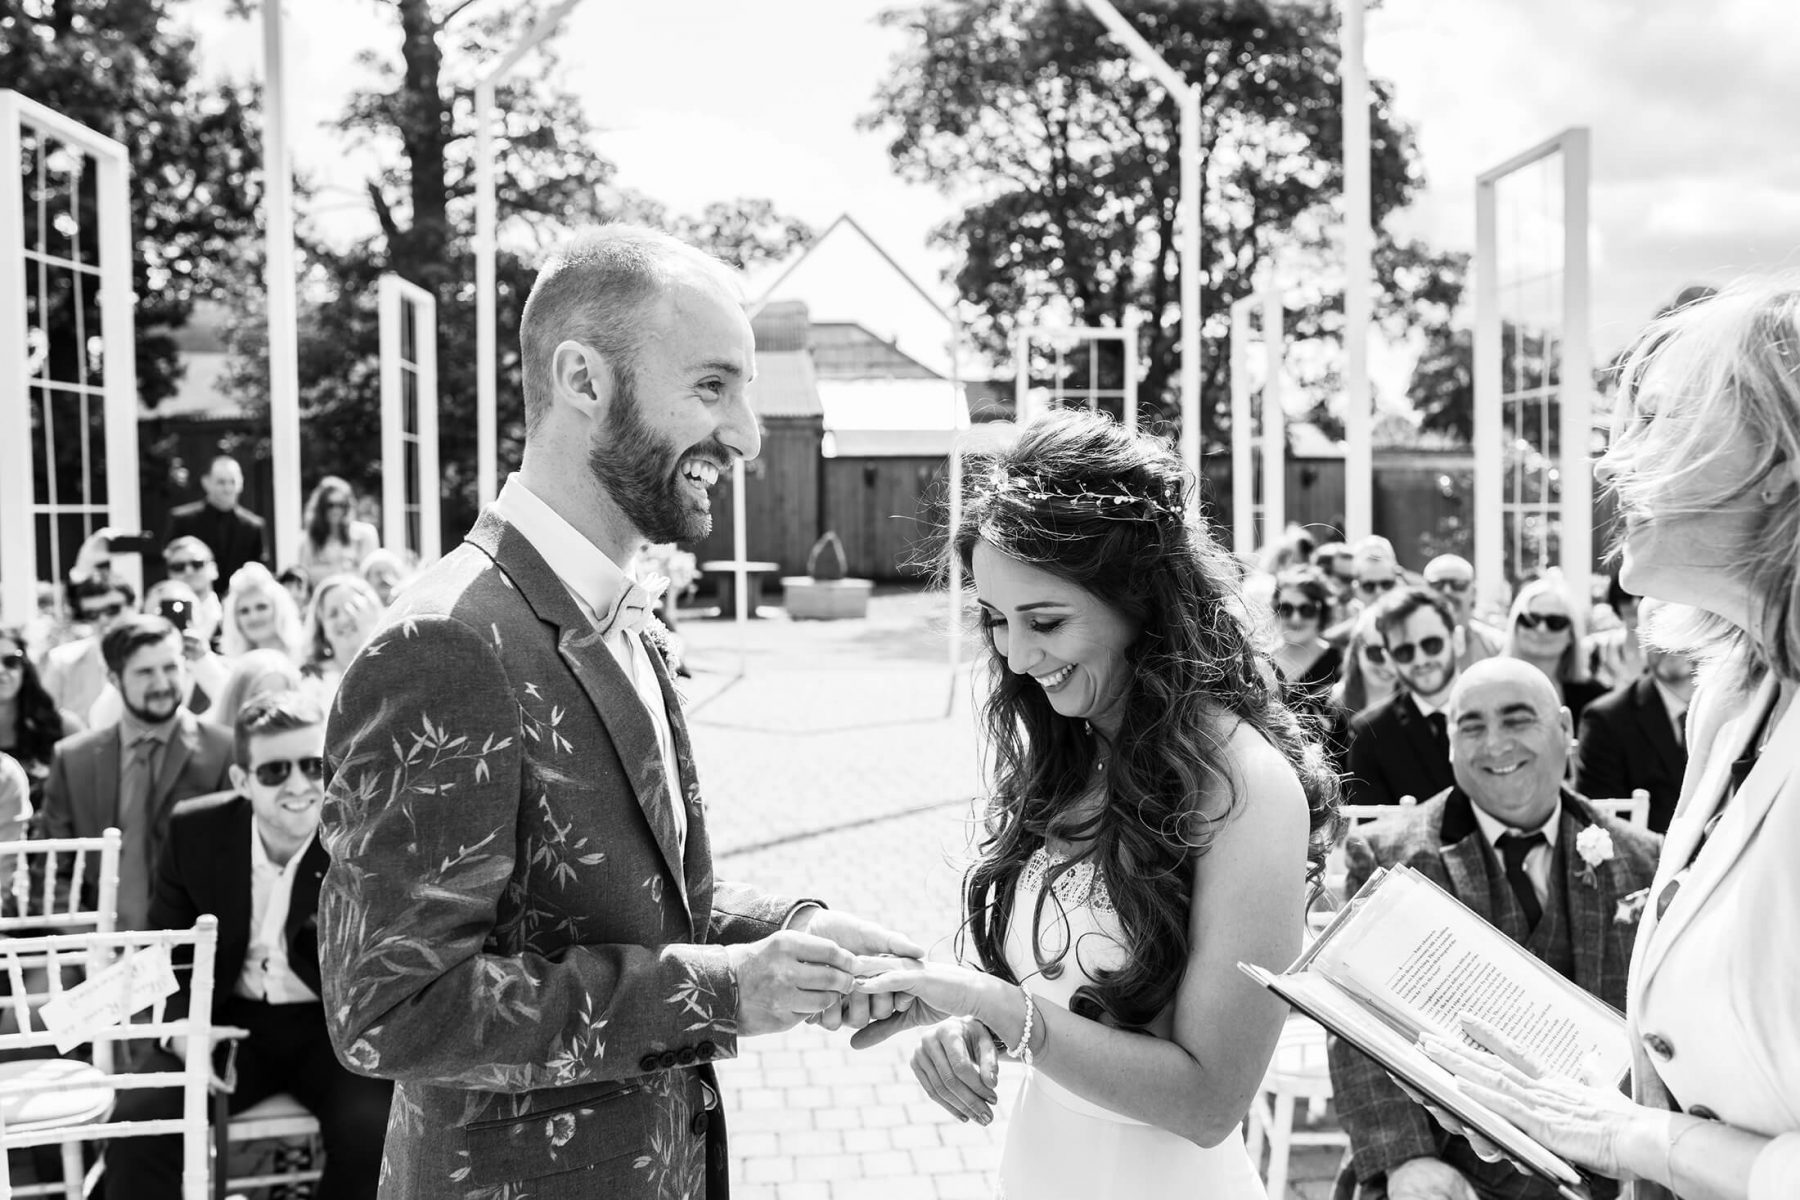 Black and WHite image of the exchanging of rings during the wedding ceremony